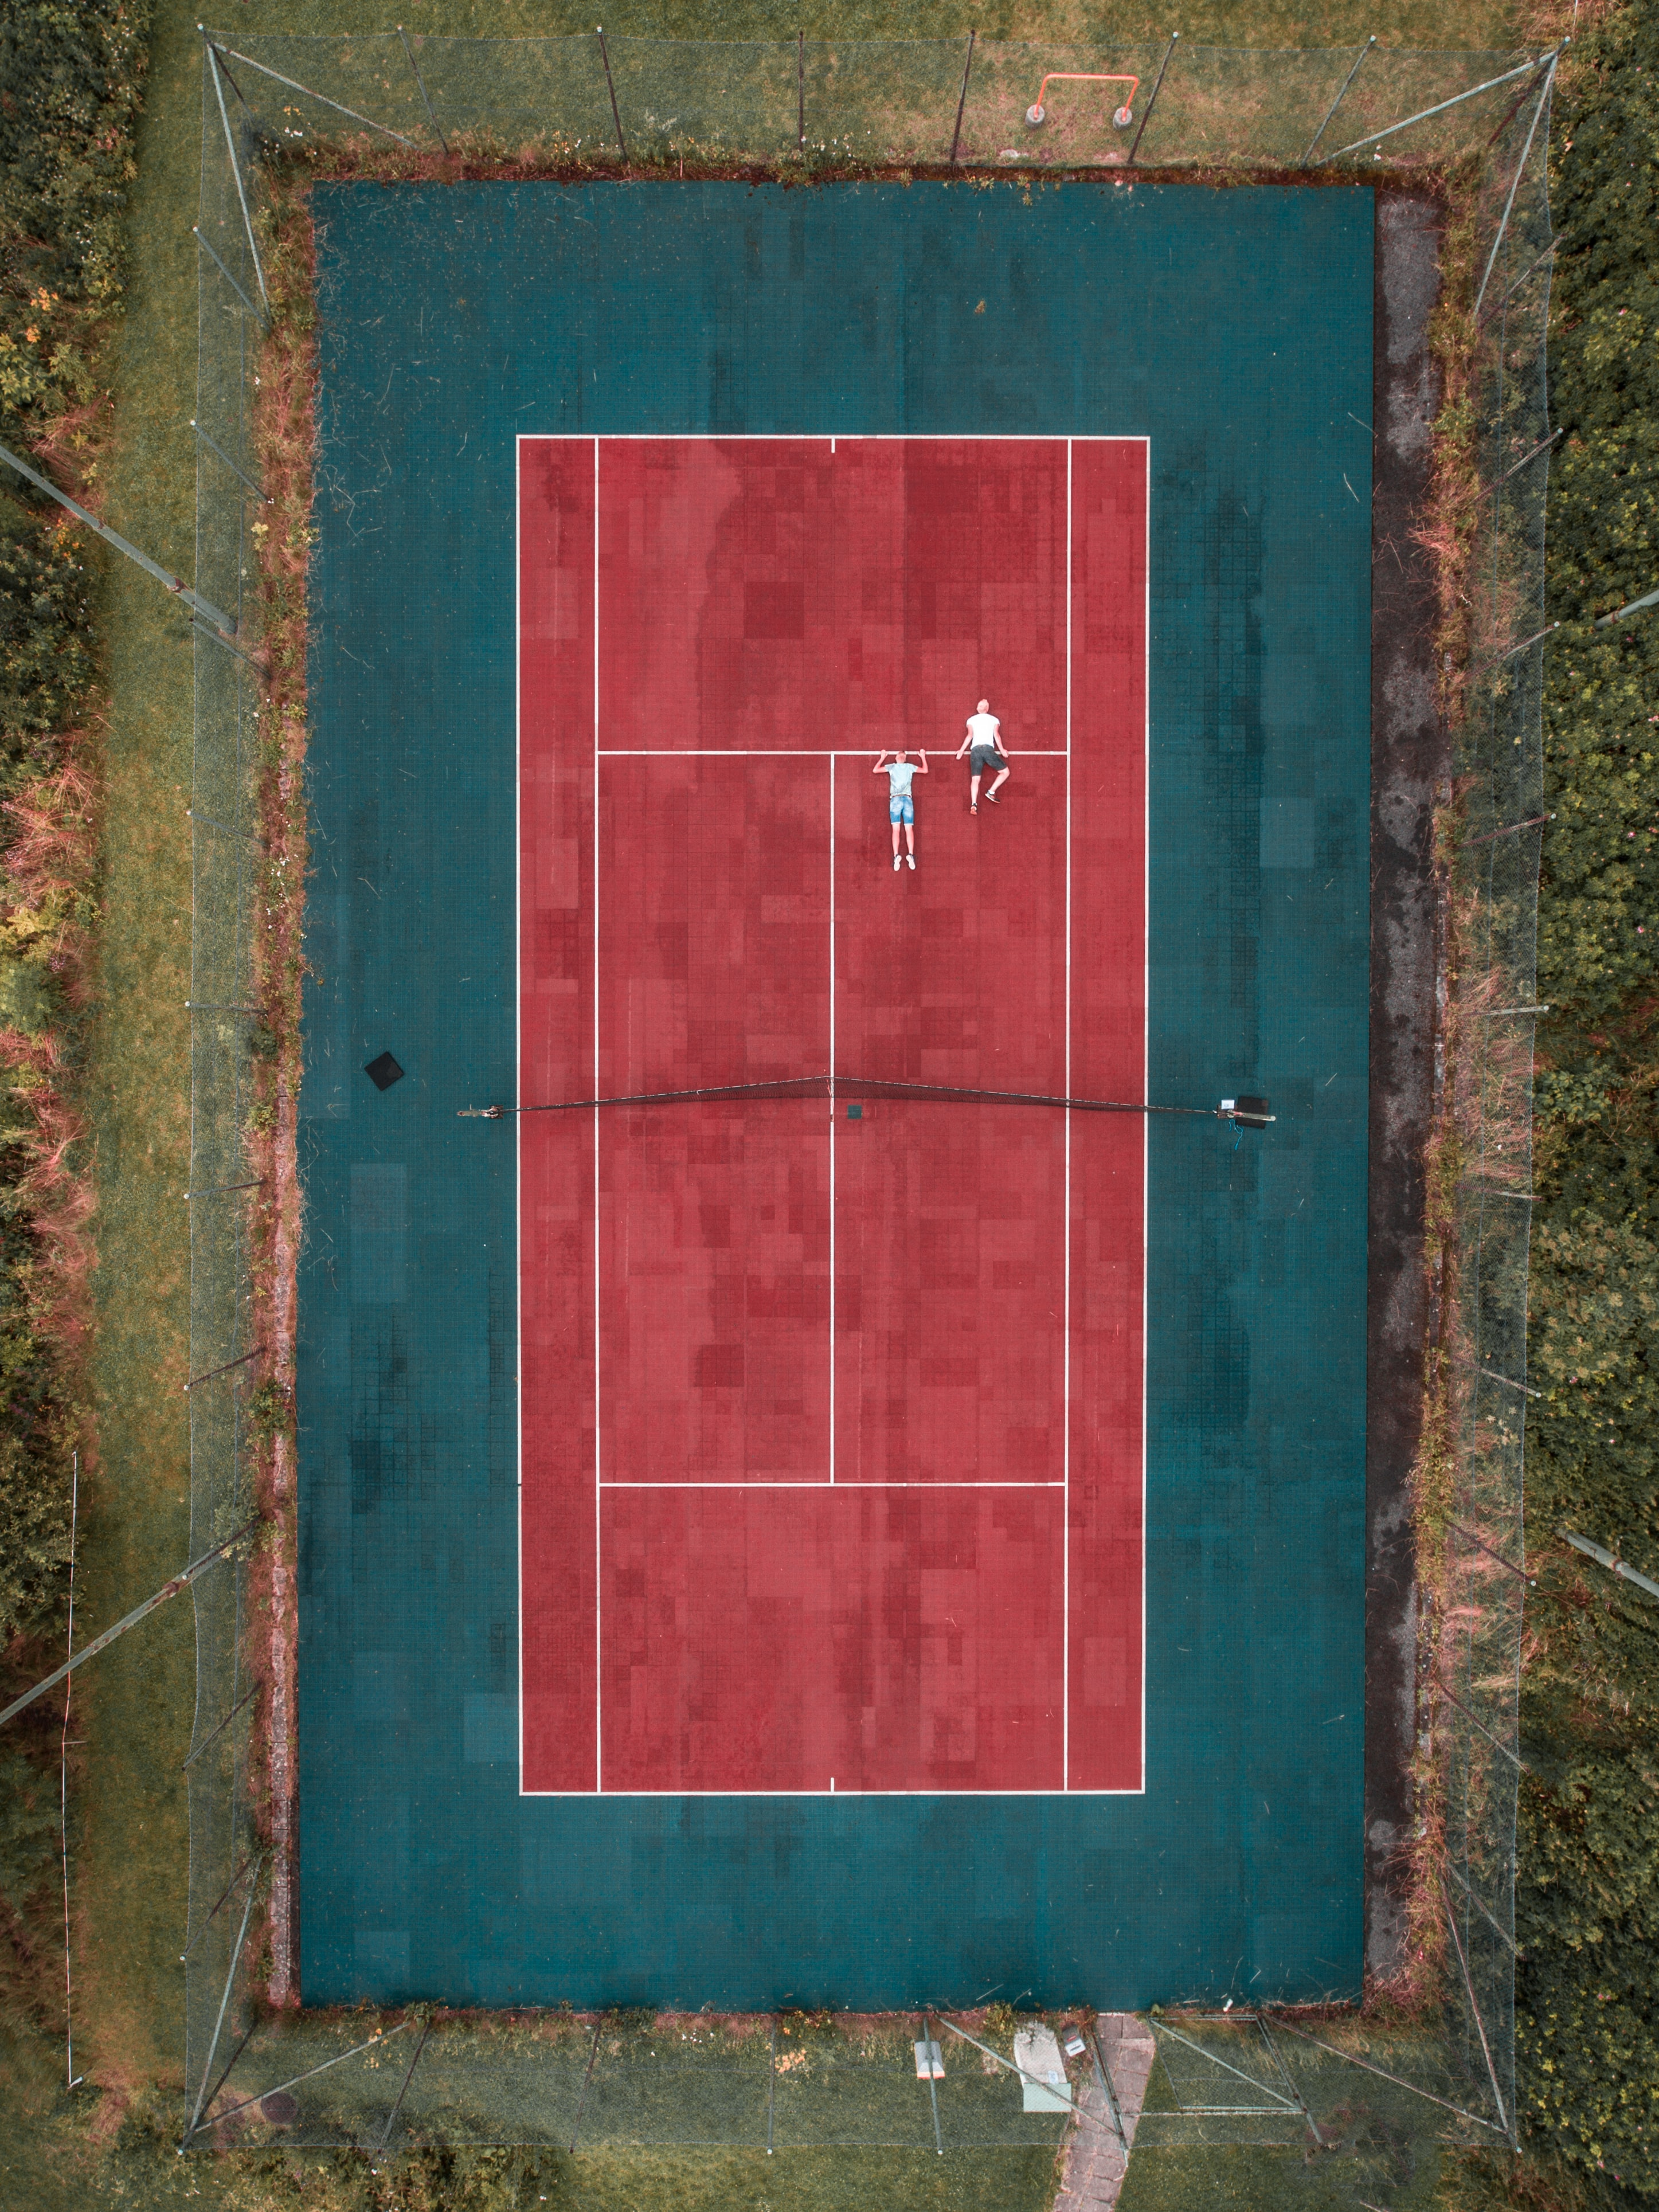 A drone looking down at an outdoor tennis court.